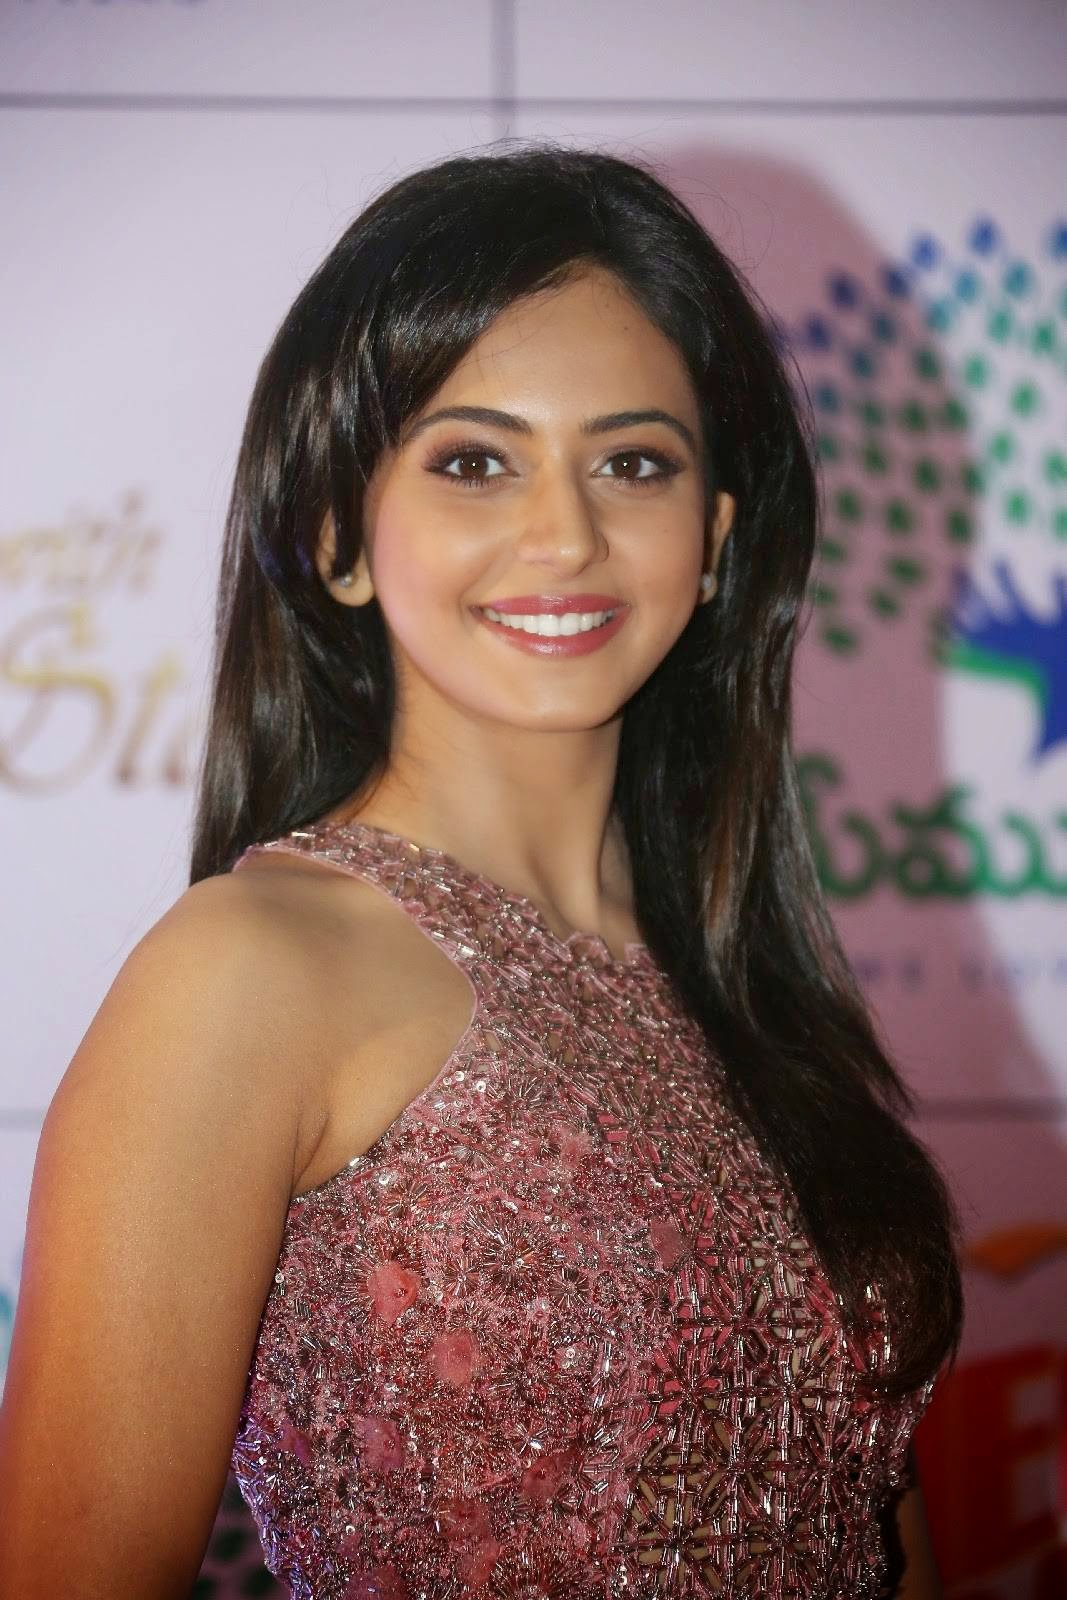 South Indian Hot Girl Rakul Preet Singh Stills At Memu Saitam In Maroon Dress